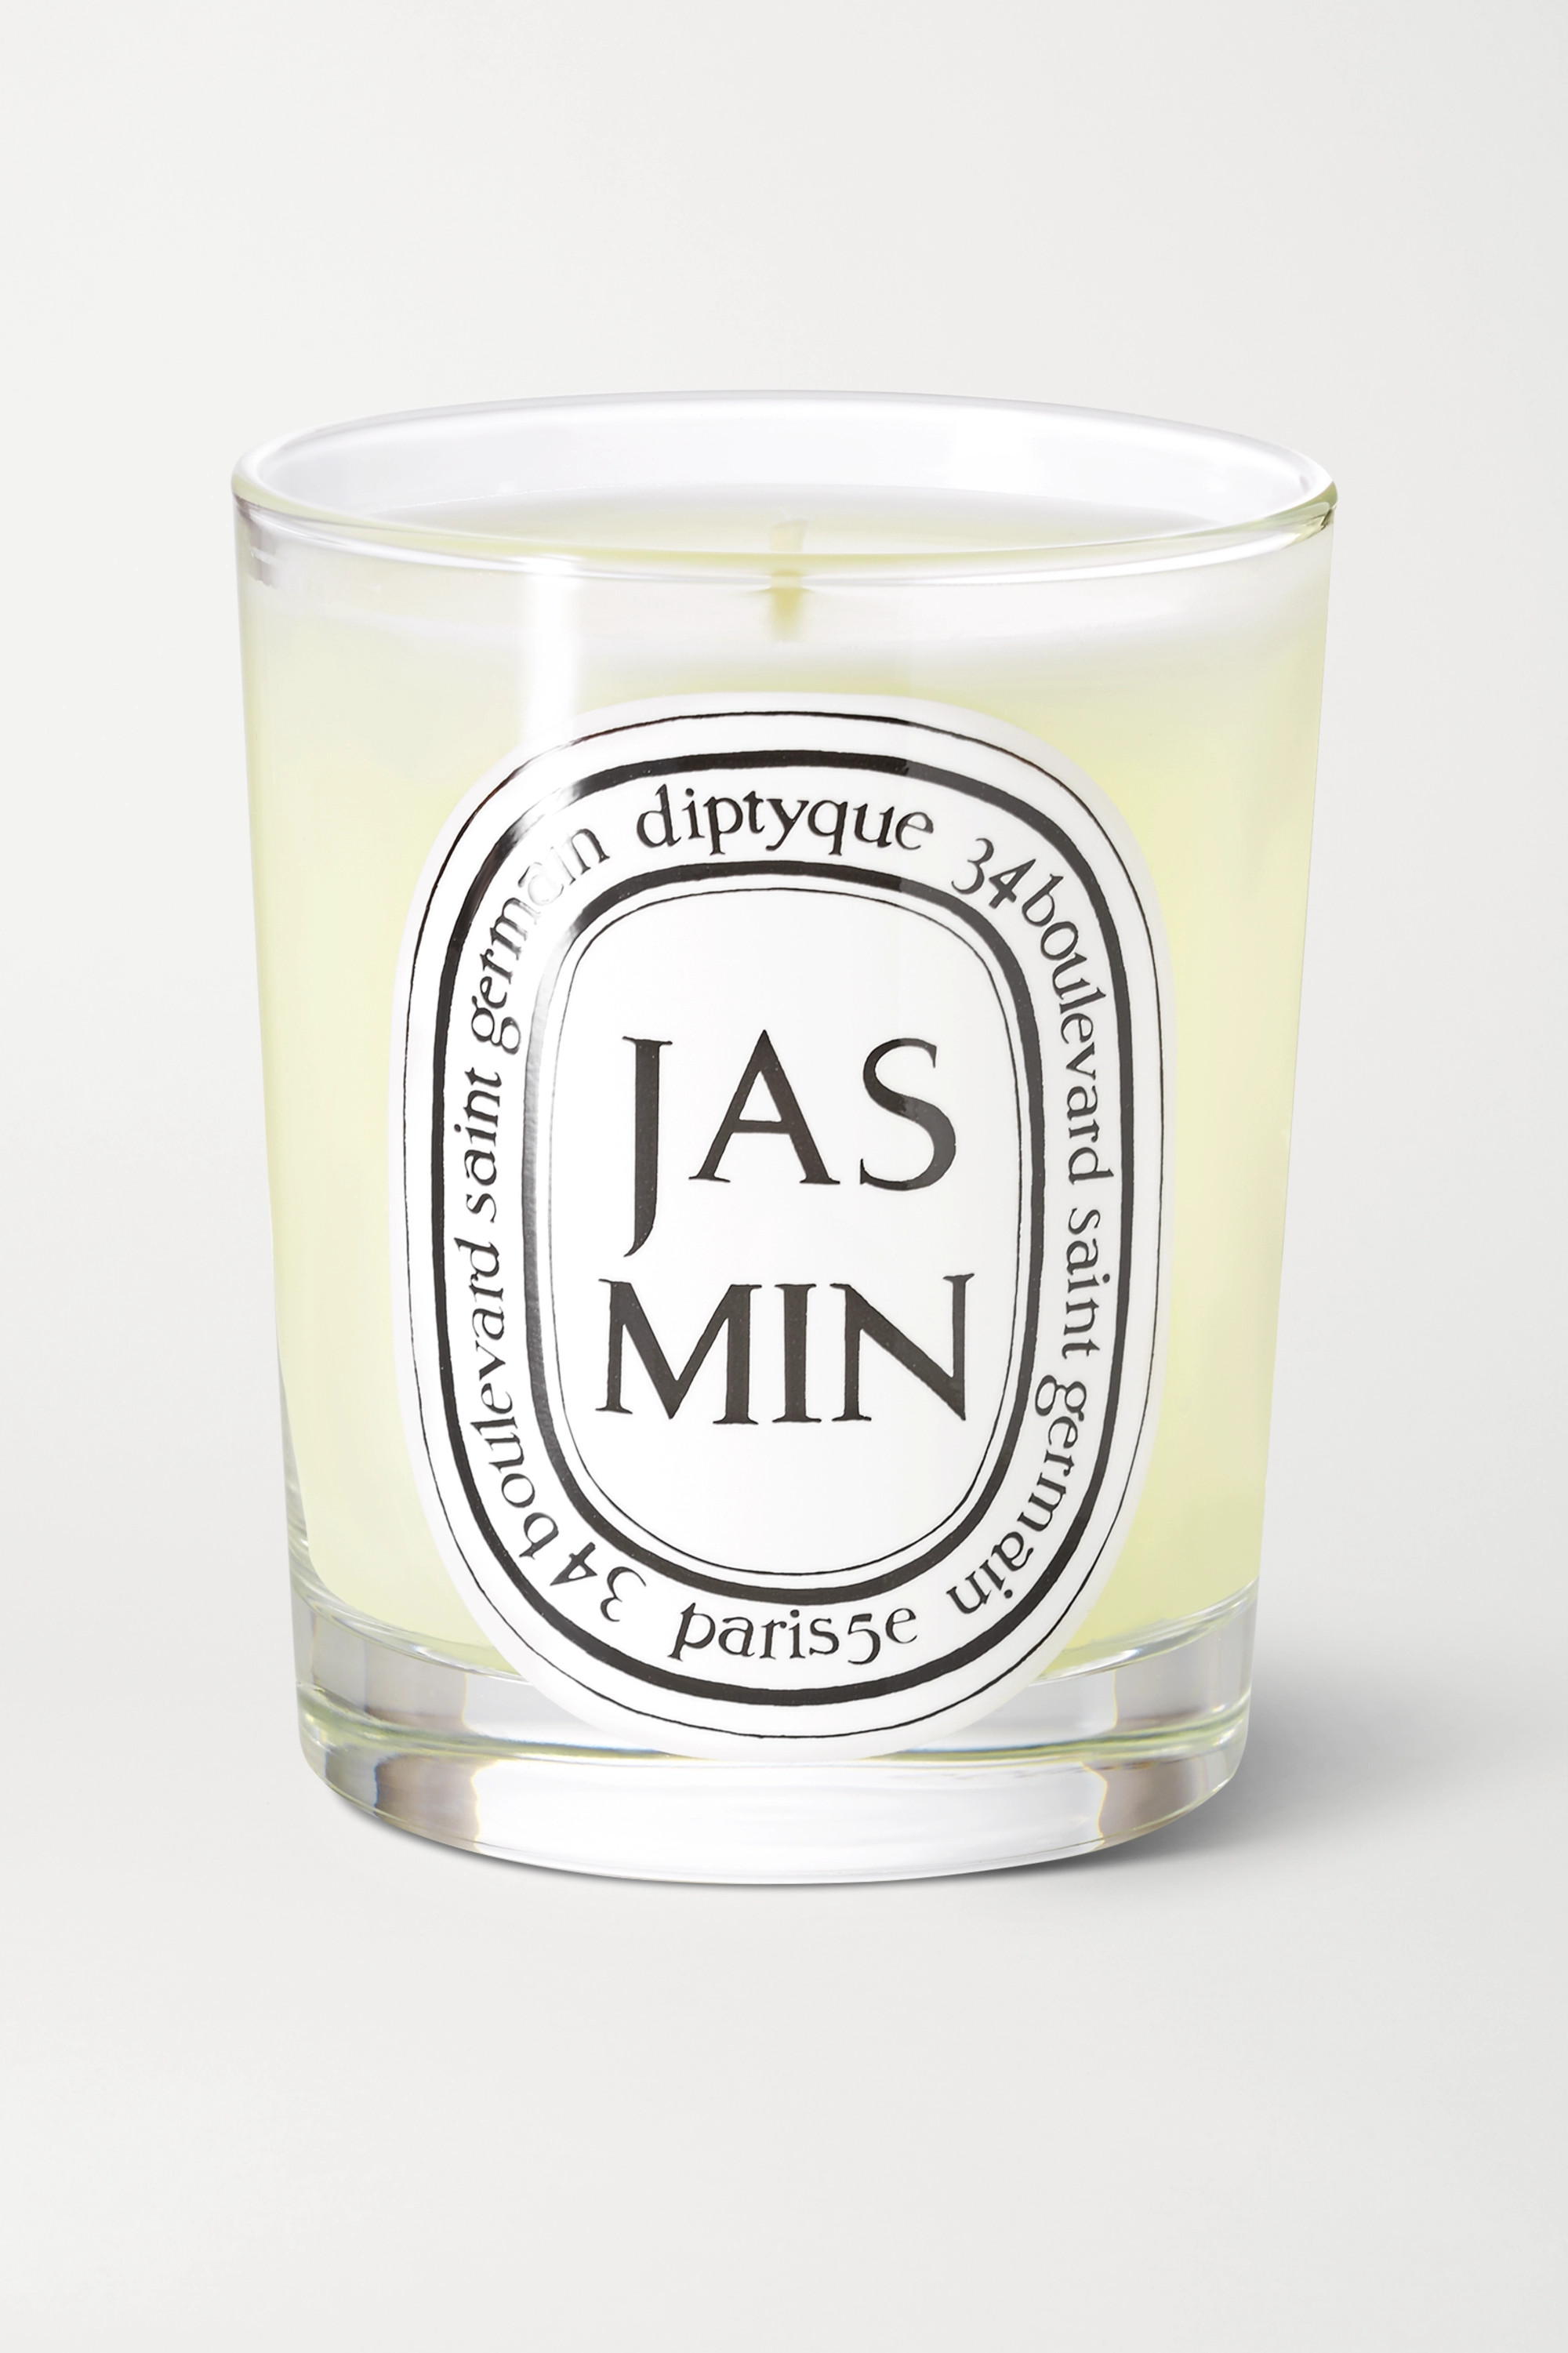 Diptyque - Jasmin scented candle, 190g